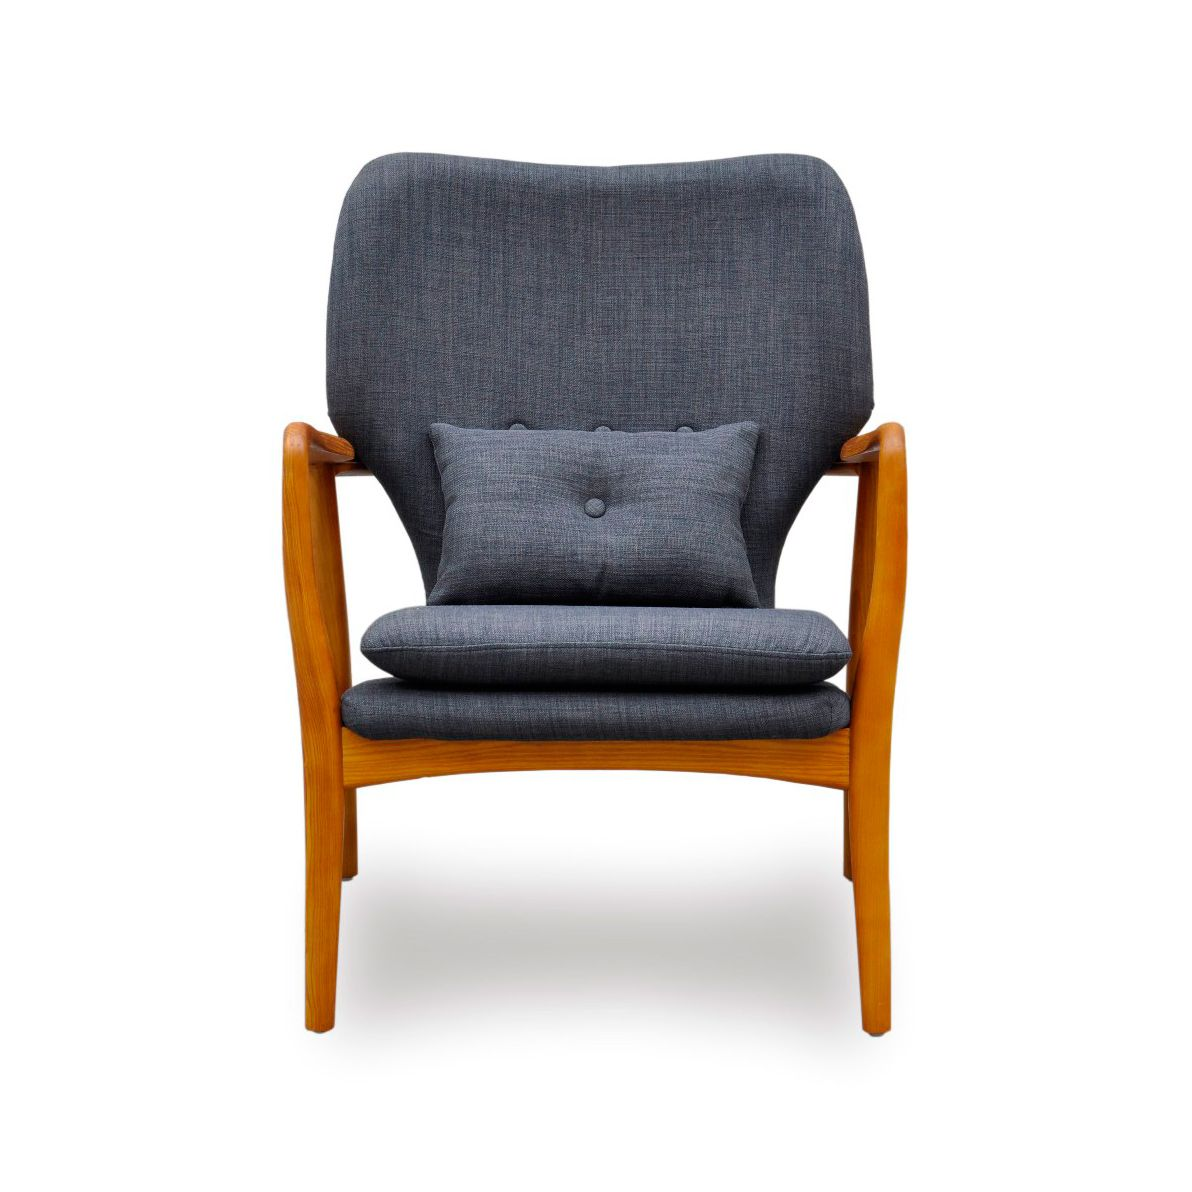 Sophistication and elegance sure looks comfy, doesn't it? Perfect for a reading nook or as a corner lounge chair, the Franklin Arm Chair in Denim Blue gives any space a modern character. Constructed ou...  Find the Franklin Arm Chair - Denim Blue, as seen in the A Romantic Modern Escape Collection at http://dotandbo.com/collections/a-romantic-modern-escape?utm_source=pinterest&utm_medium=organic&db_sku=IDS0010